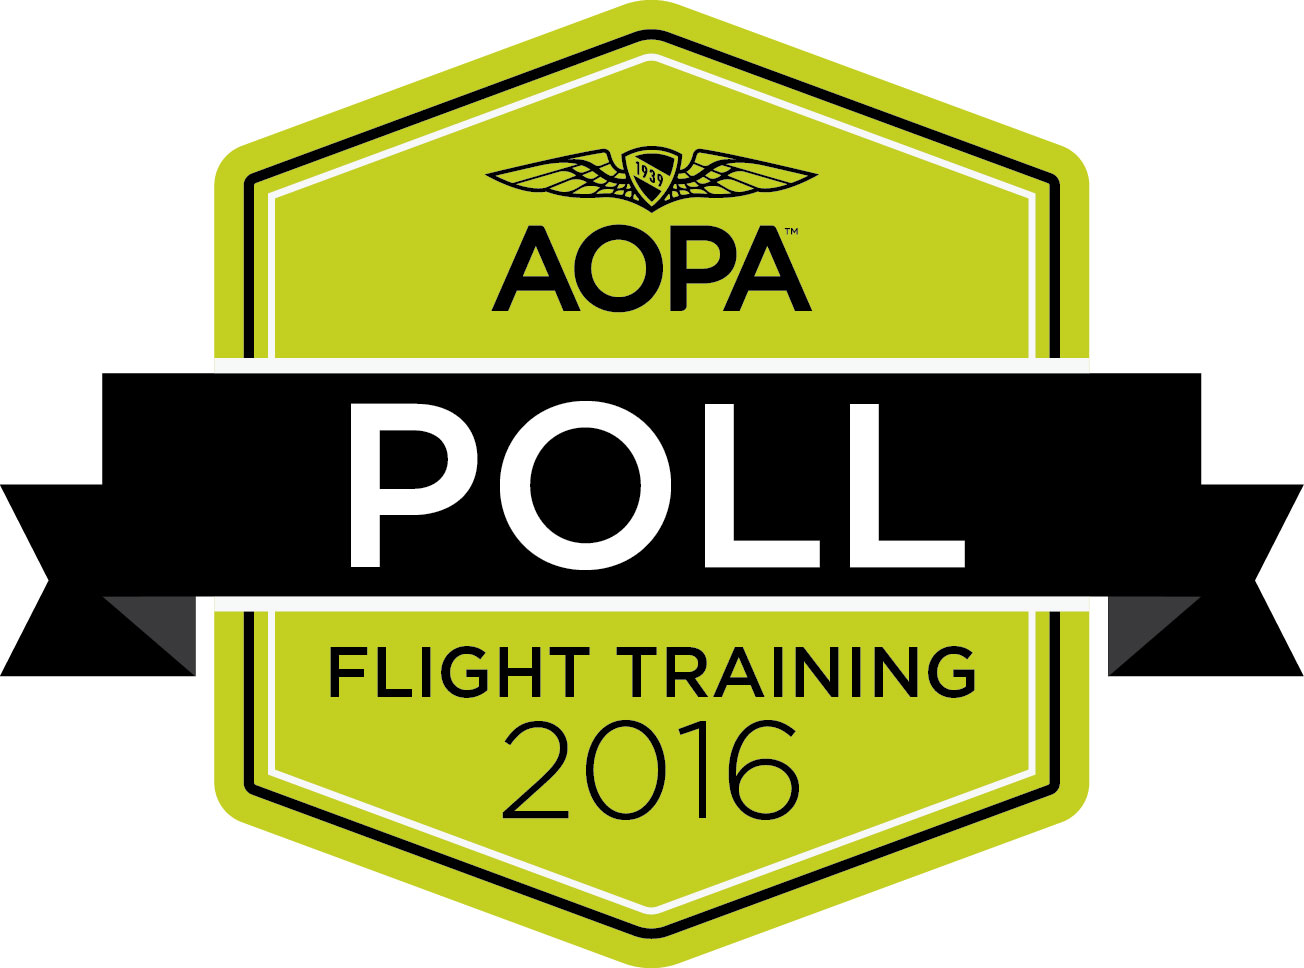 Click here to take the Flight Training Poll.